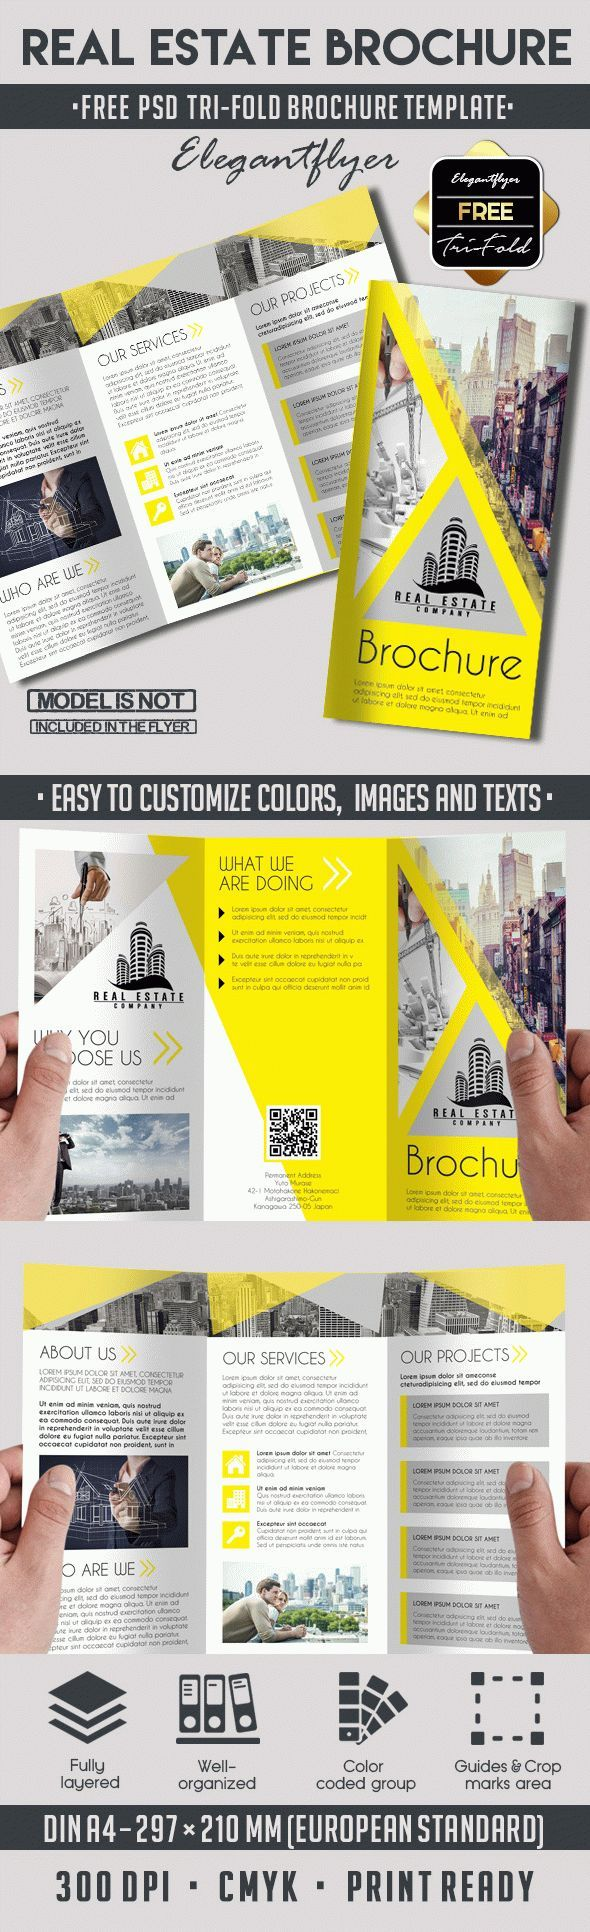 Free Booklet Template Real Estate  Free Trifold Psd Brochure Template  Ideas For The .